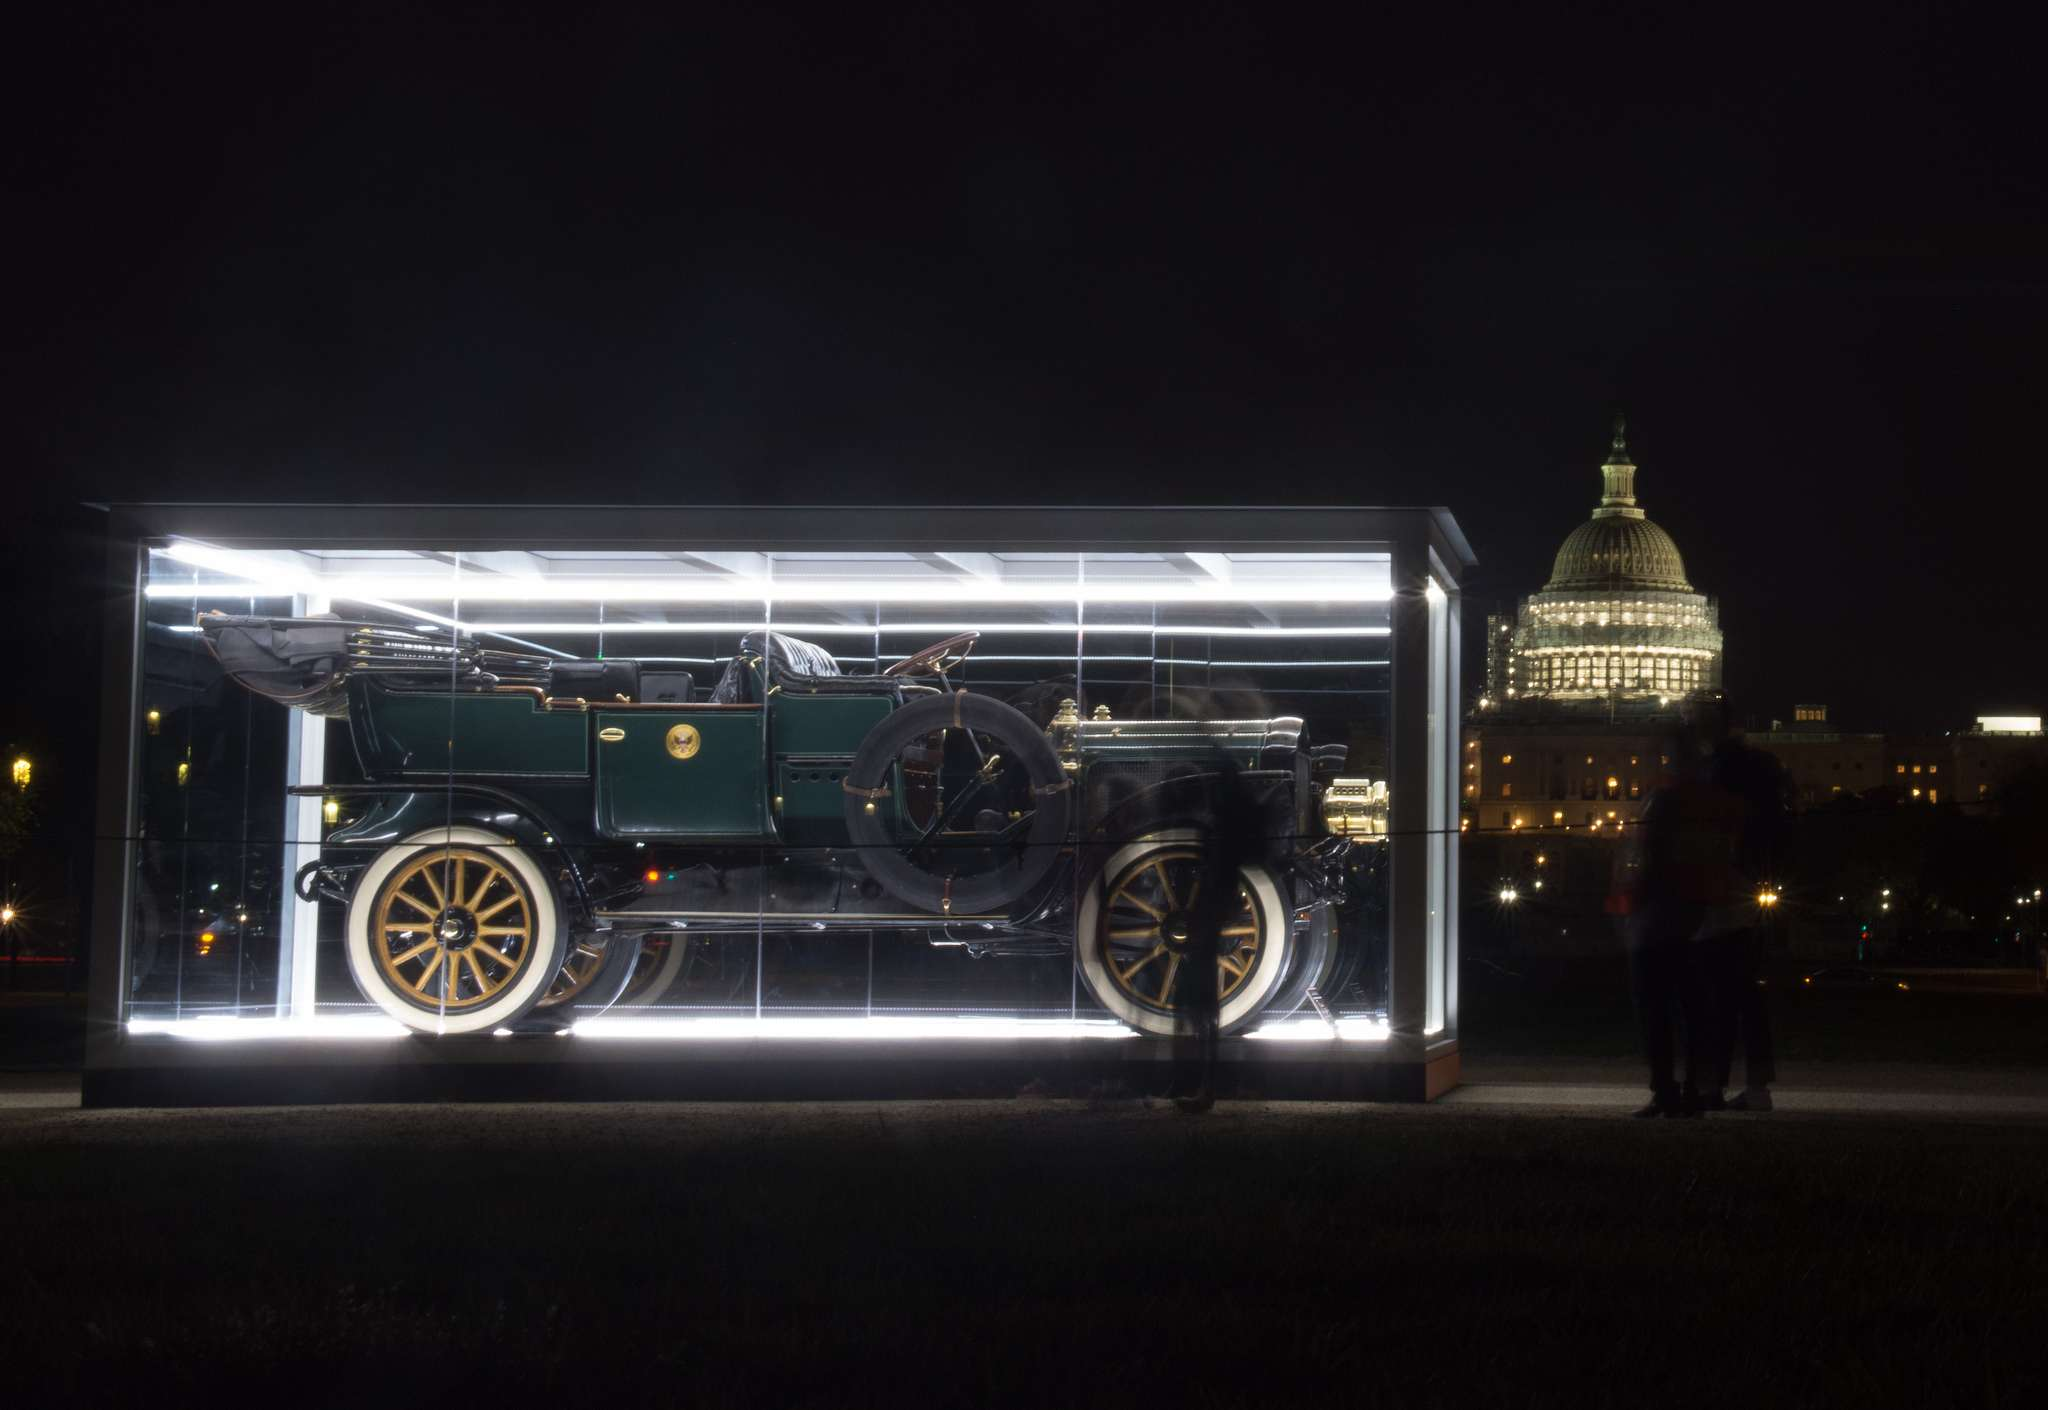 taft steam car2 Exhibition of Presidential Taft Steam Car at the National Mall